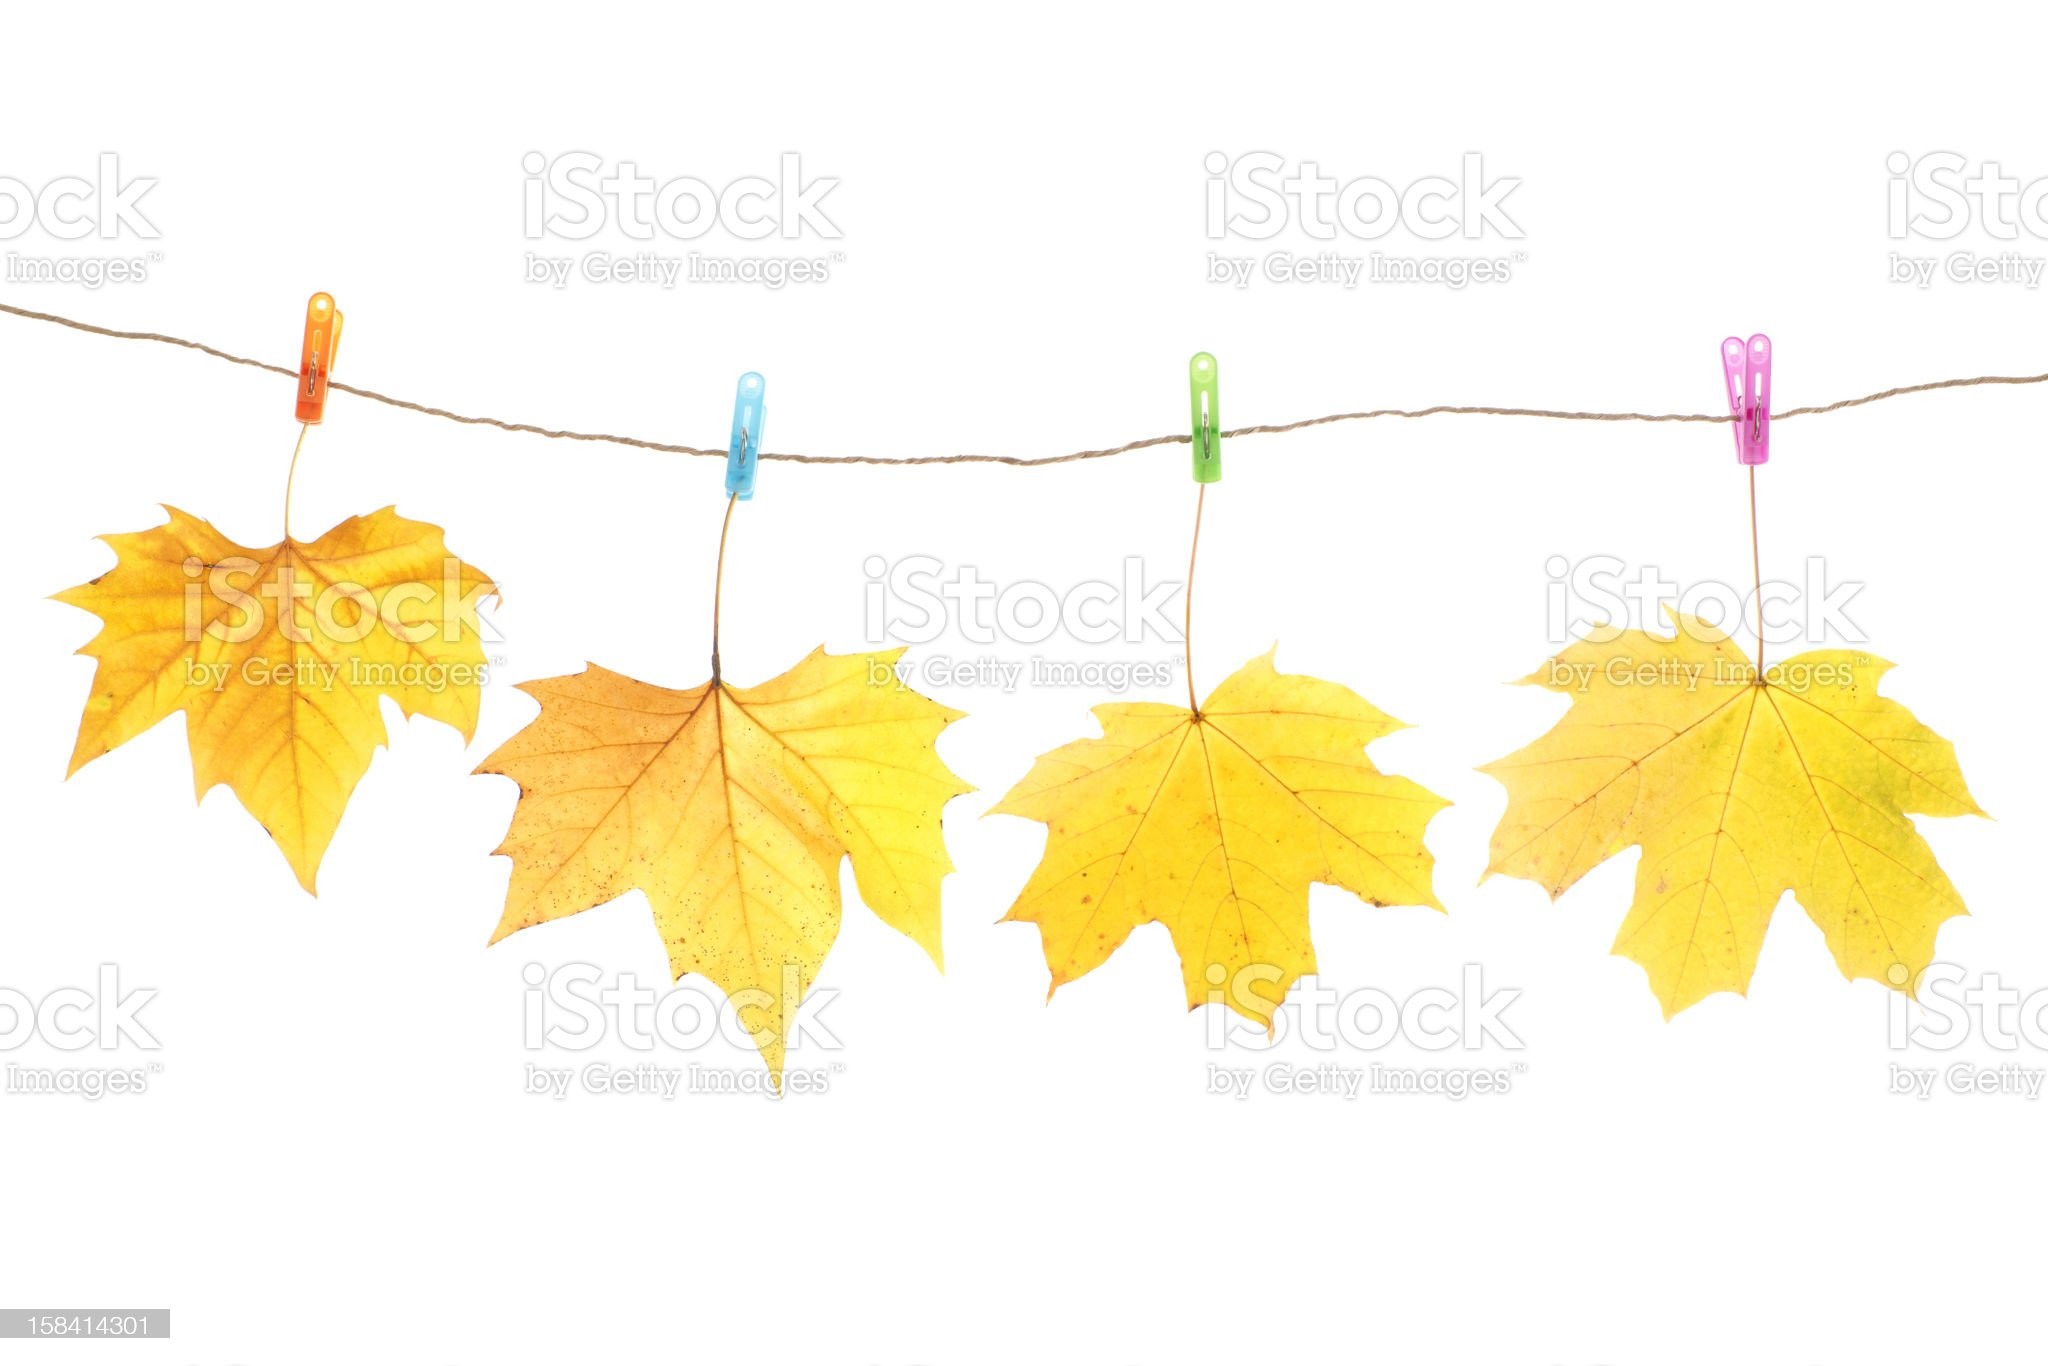 Autumn leaves and clothes pegs, isolated on white royalty-free stock photo